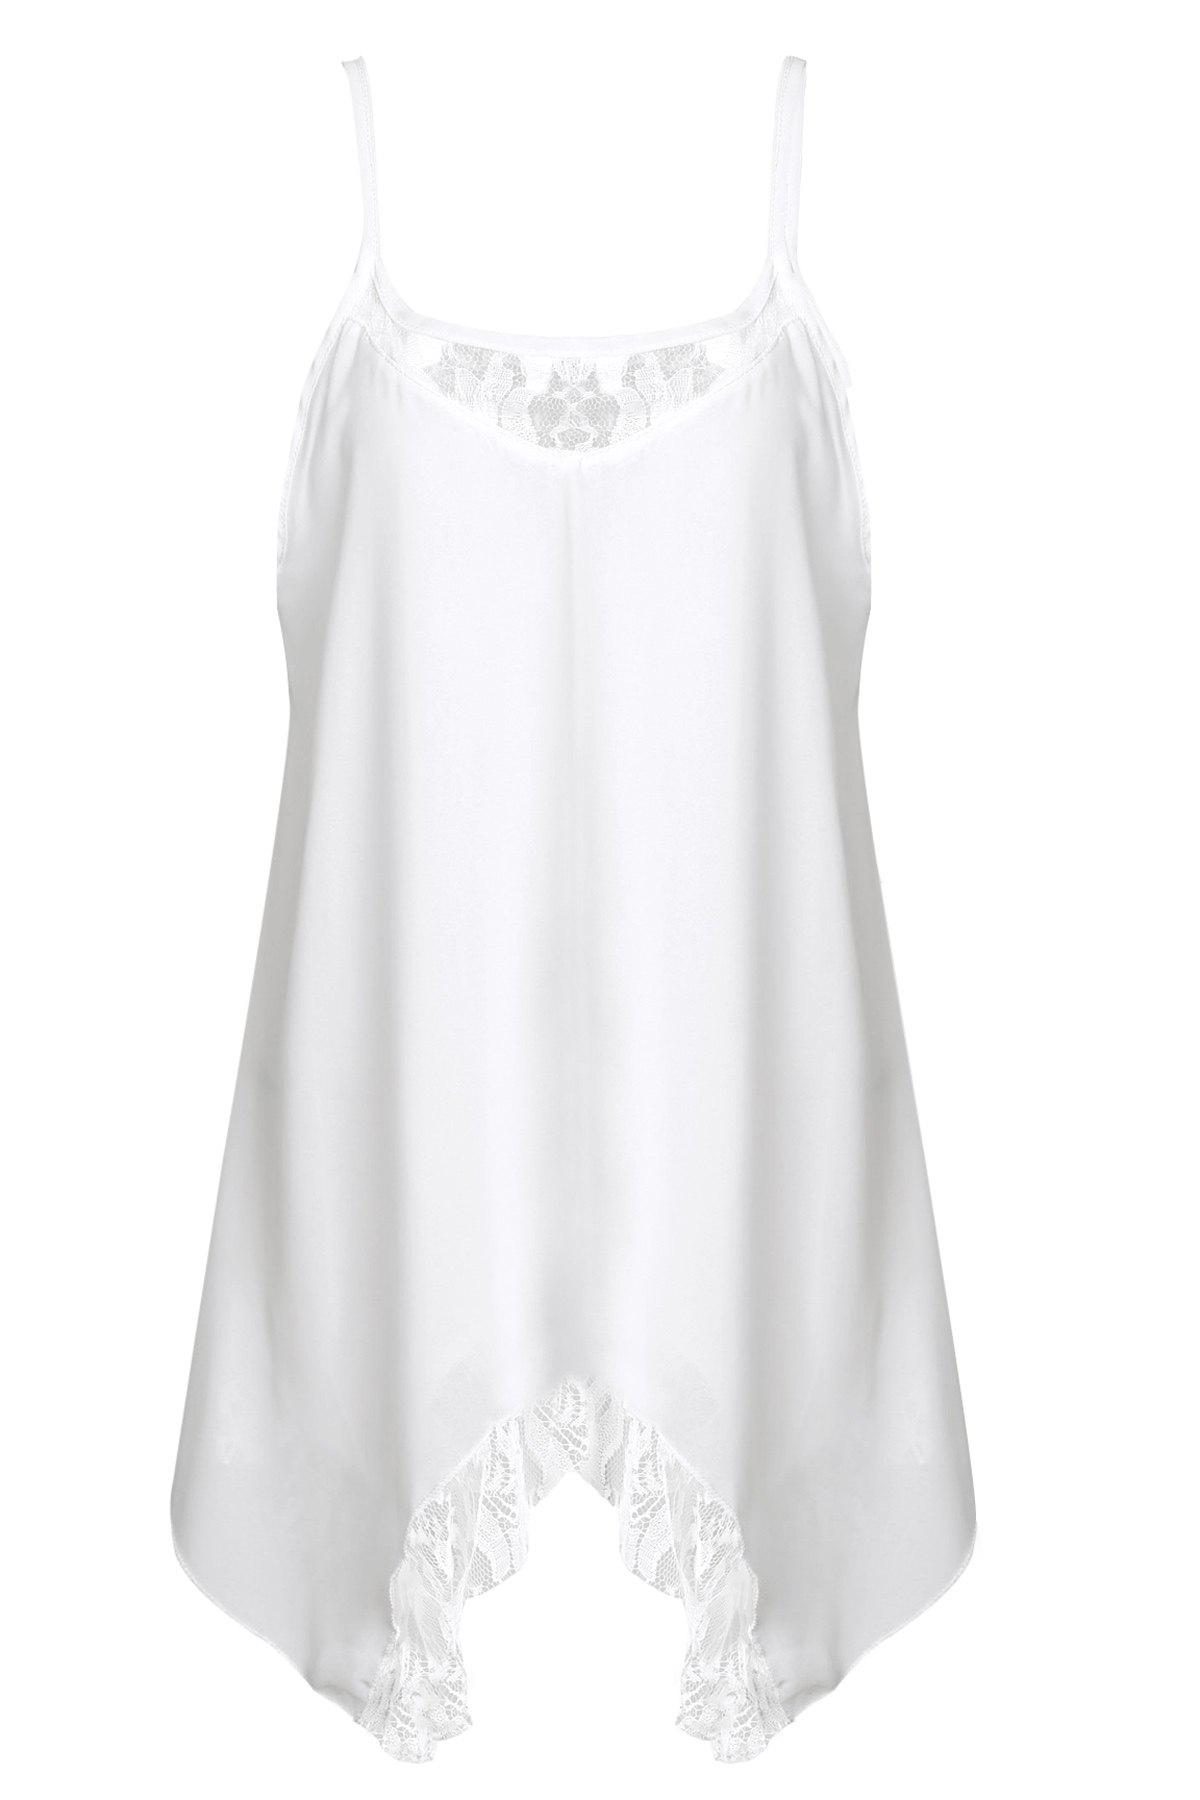 Fashionable Asymmetrical Lace Splicing Tank Dress For Women - WHITE S